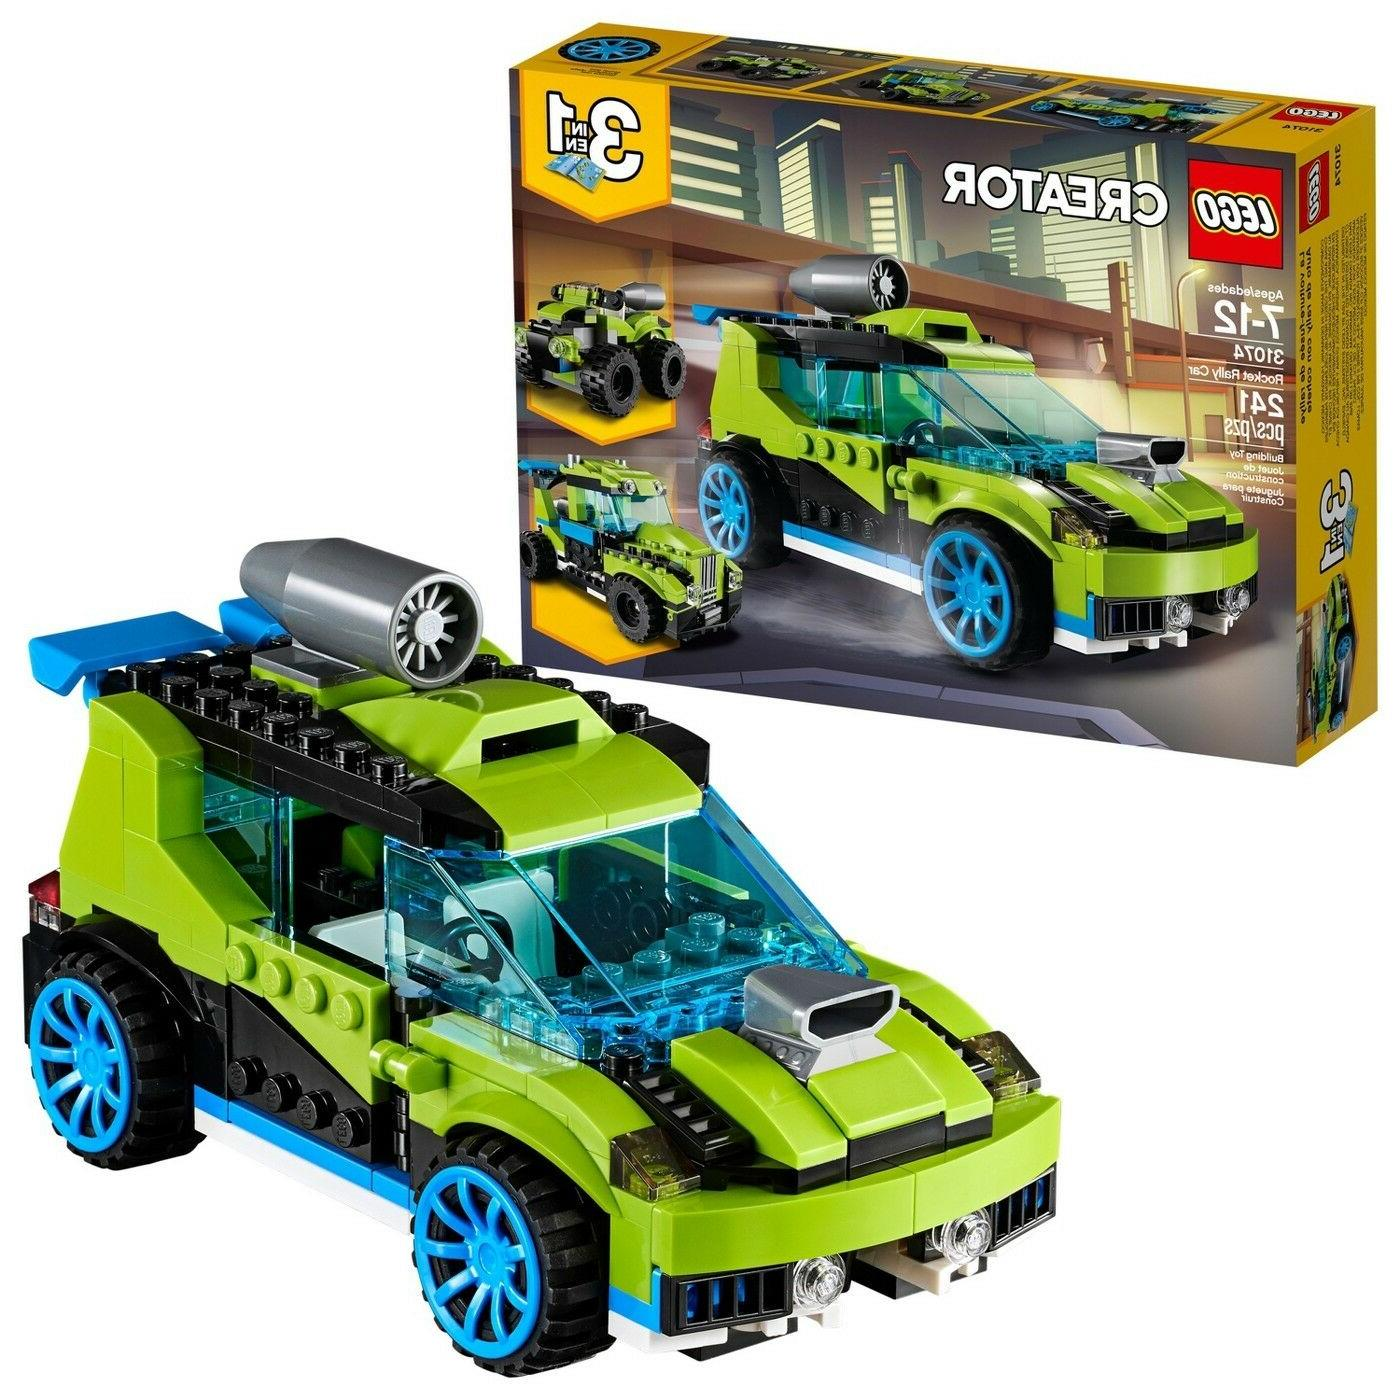 LEGO Creator Rocket Rally Car 31074 Toys for Kids 3 in 1 Bui